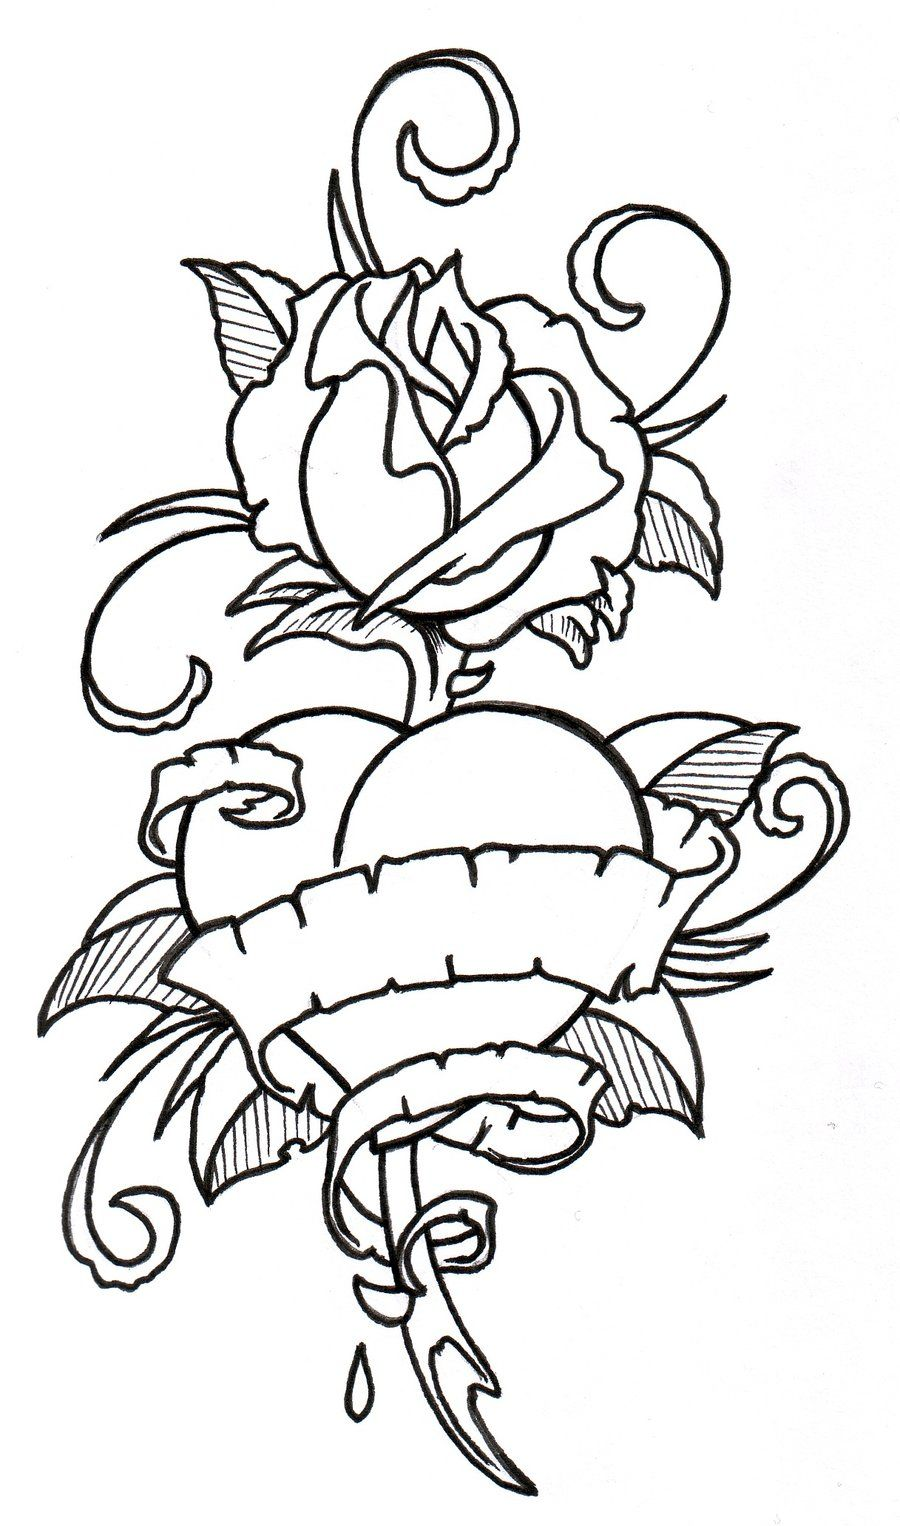 Roseheart Outline By Vikingtattoo On Deviantart Rose Outline Drawing Outline Drawings Rose Coloring Pages